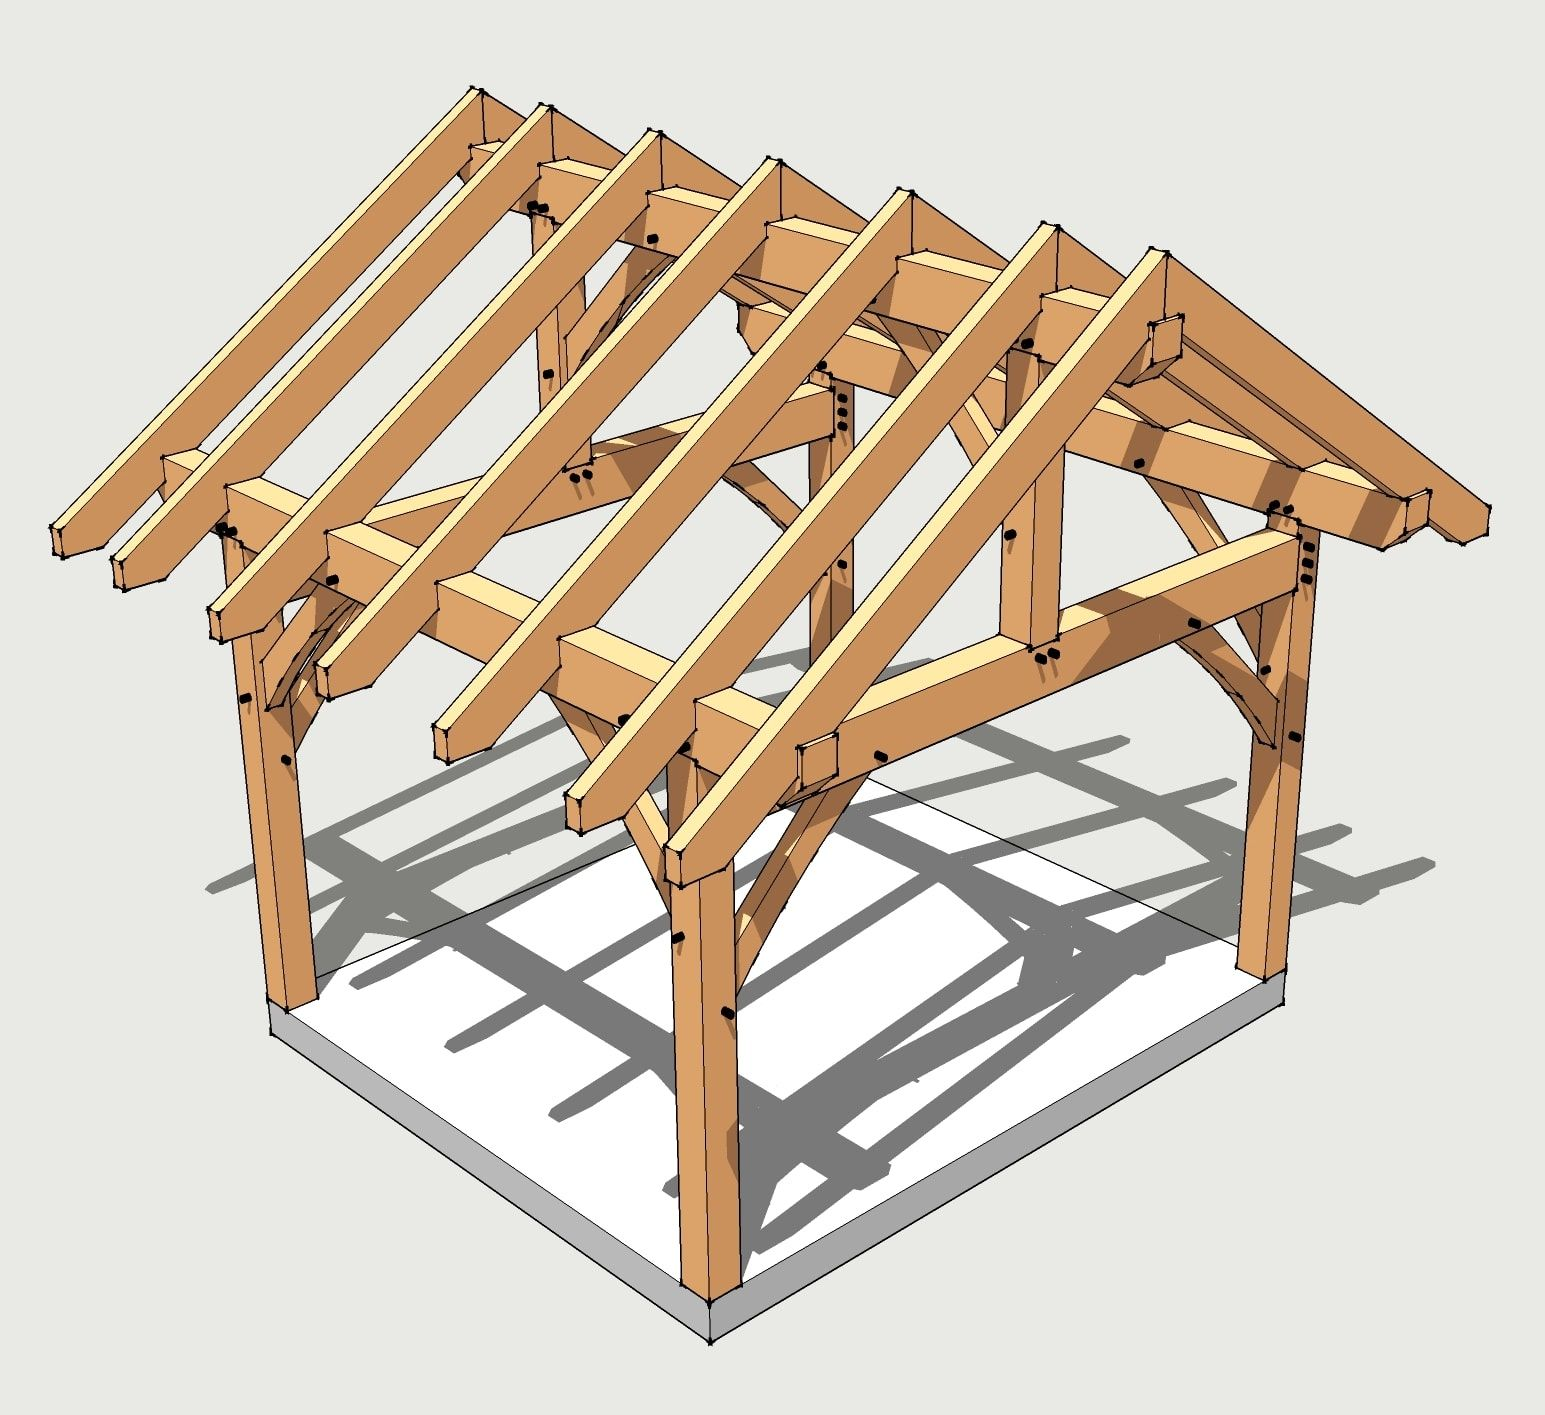 12x14 Timber Frame Plan Timber Frame Hq Timber Frame Plans Timber Frame Construction Timber Frame Homes